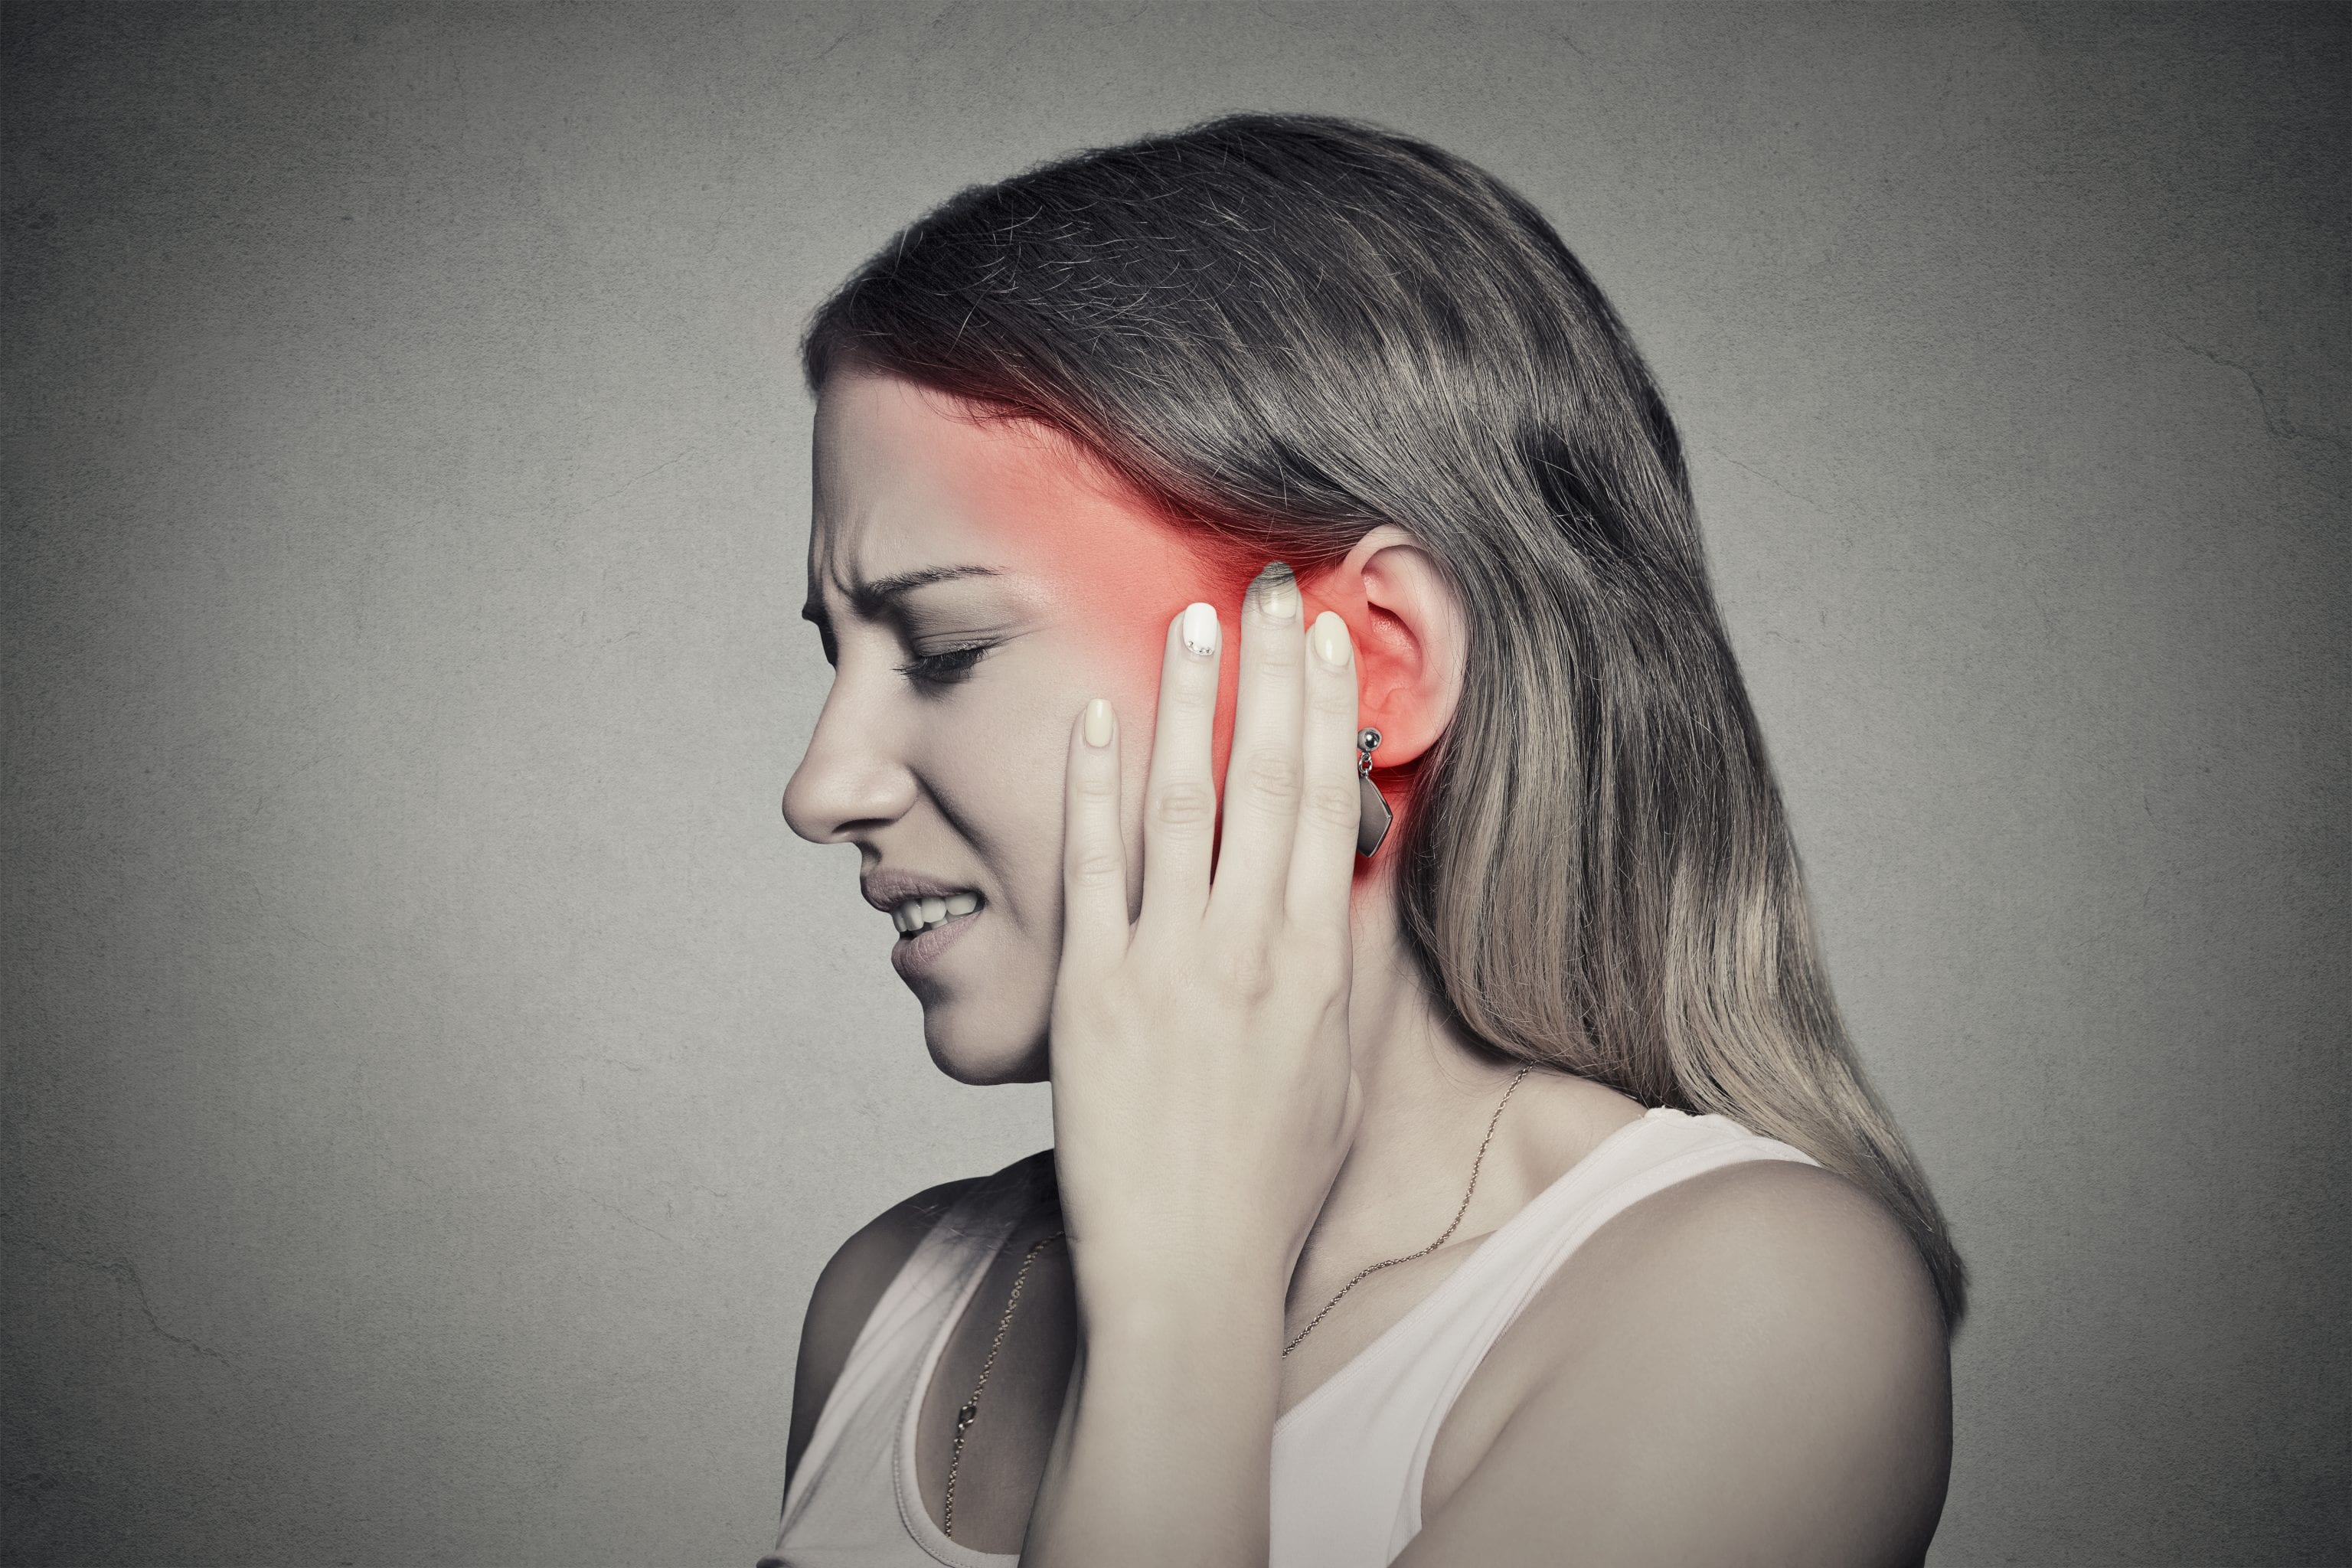 side angle of woman touching ear in distress